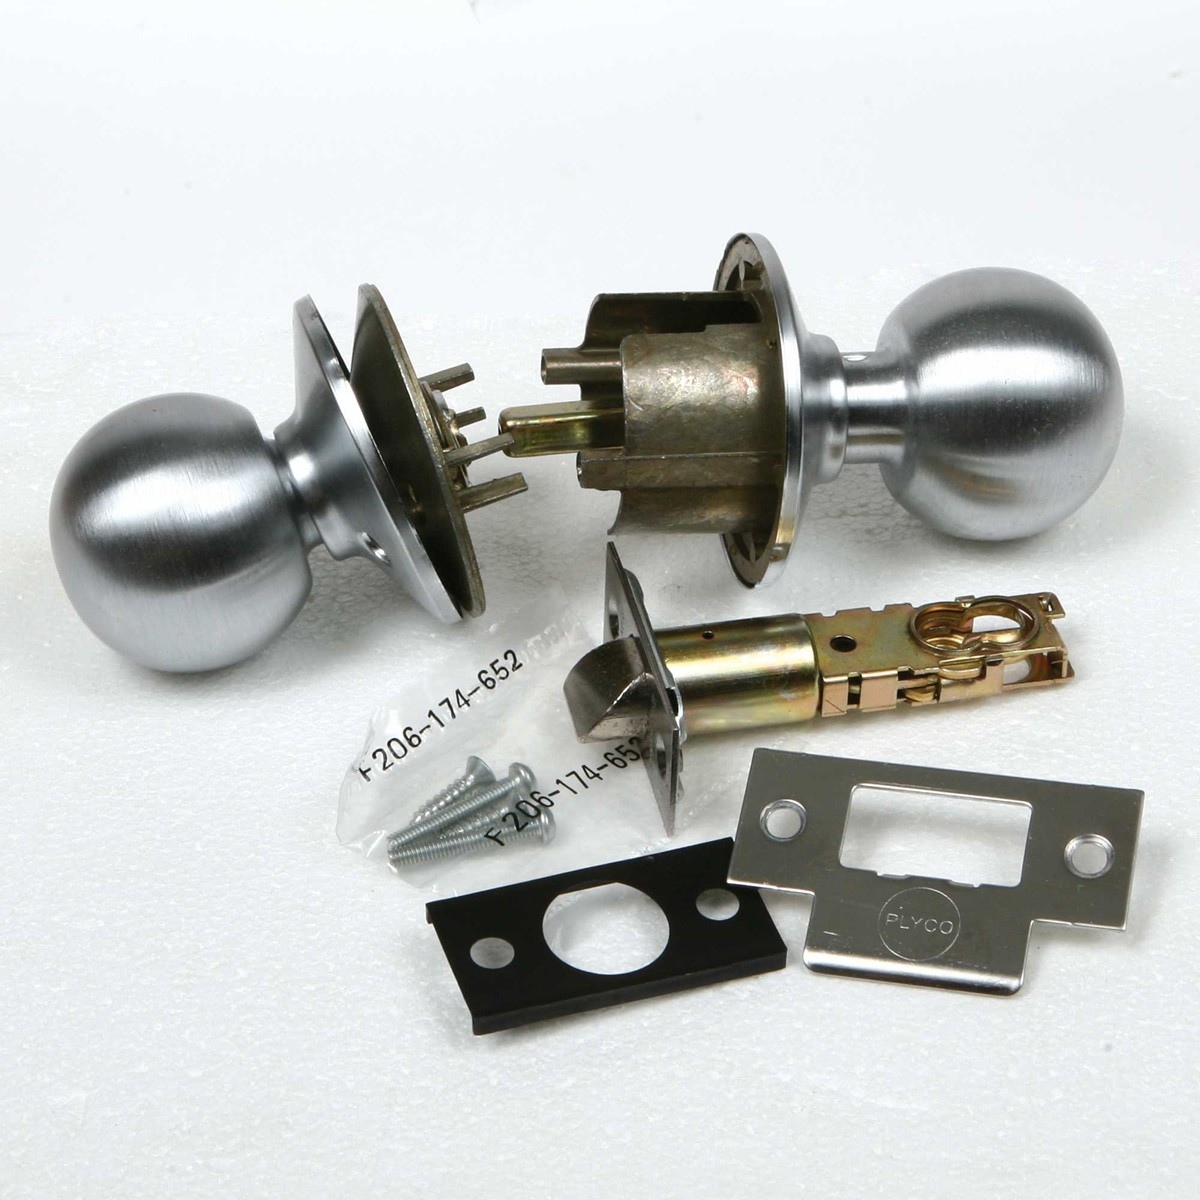 parts of door knob photo - 3